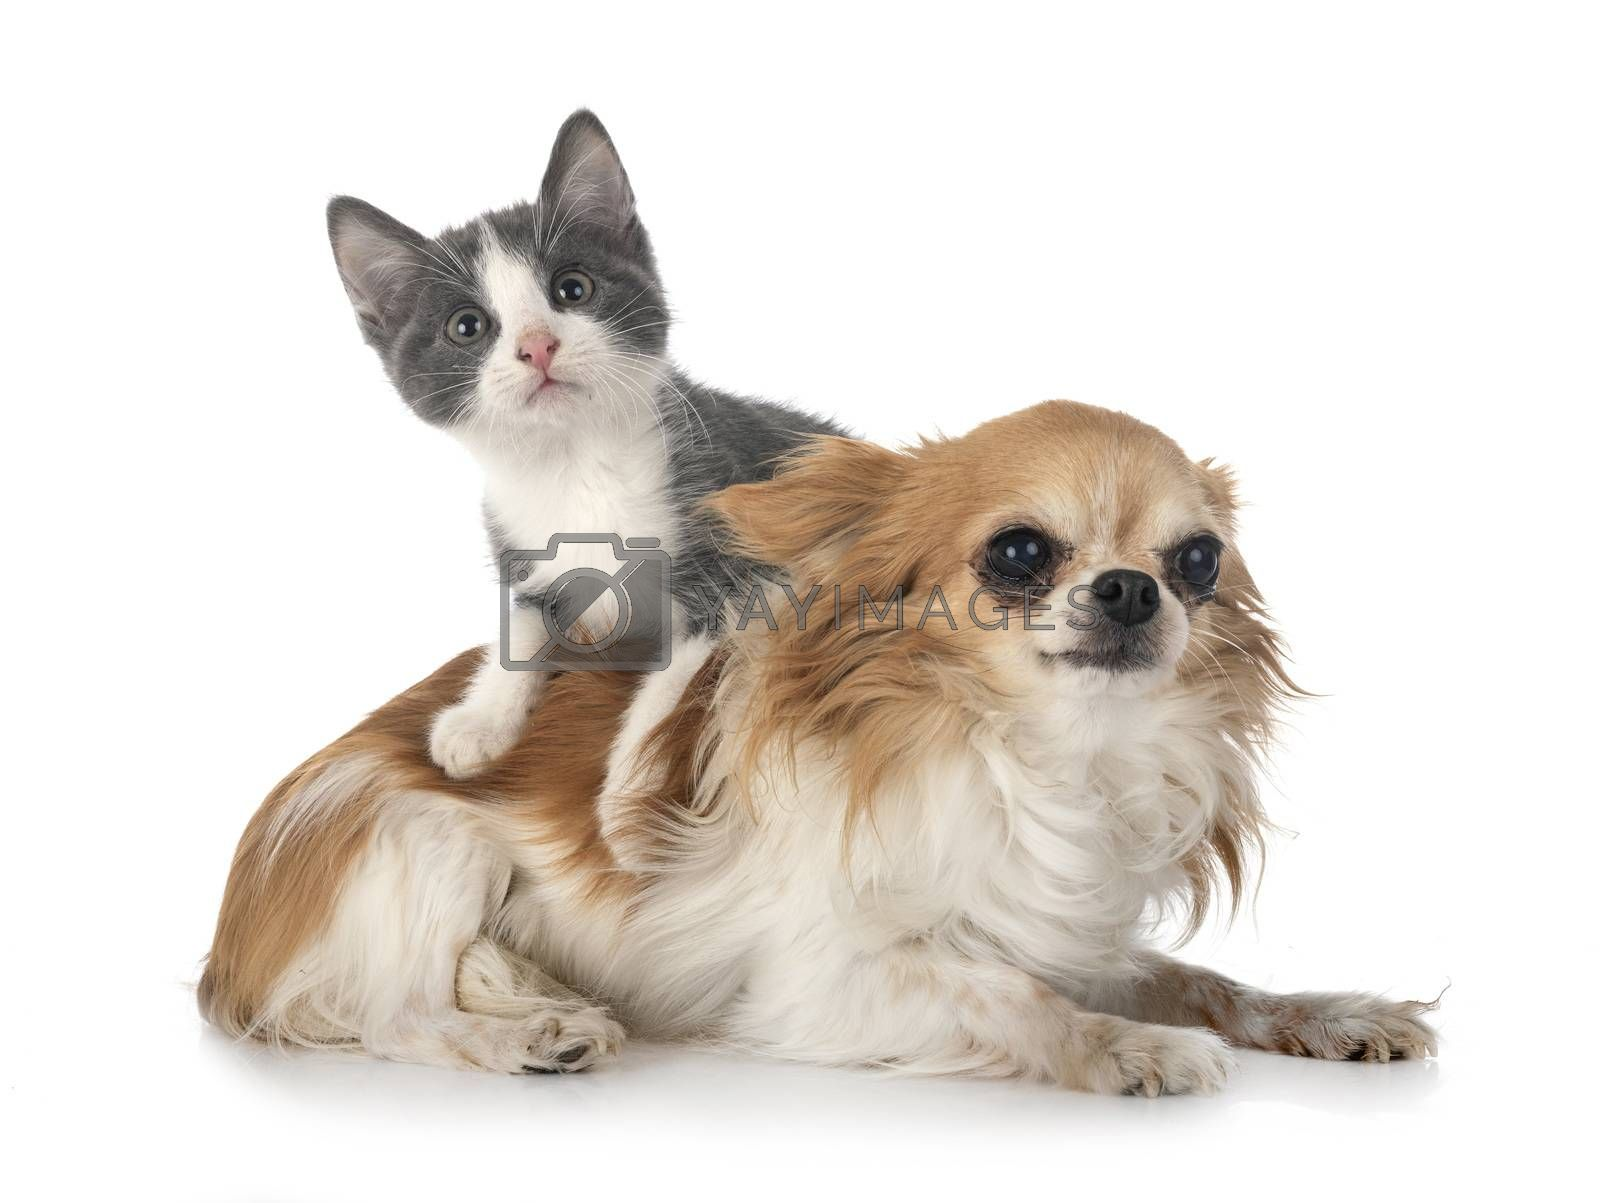 stray kitten and chihuahua in front of white background